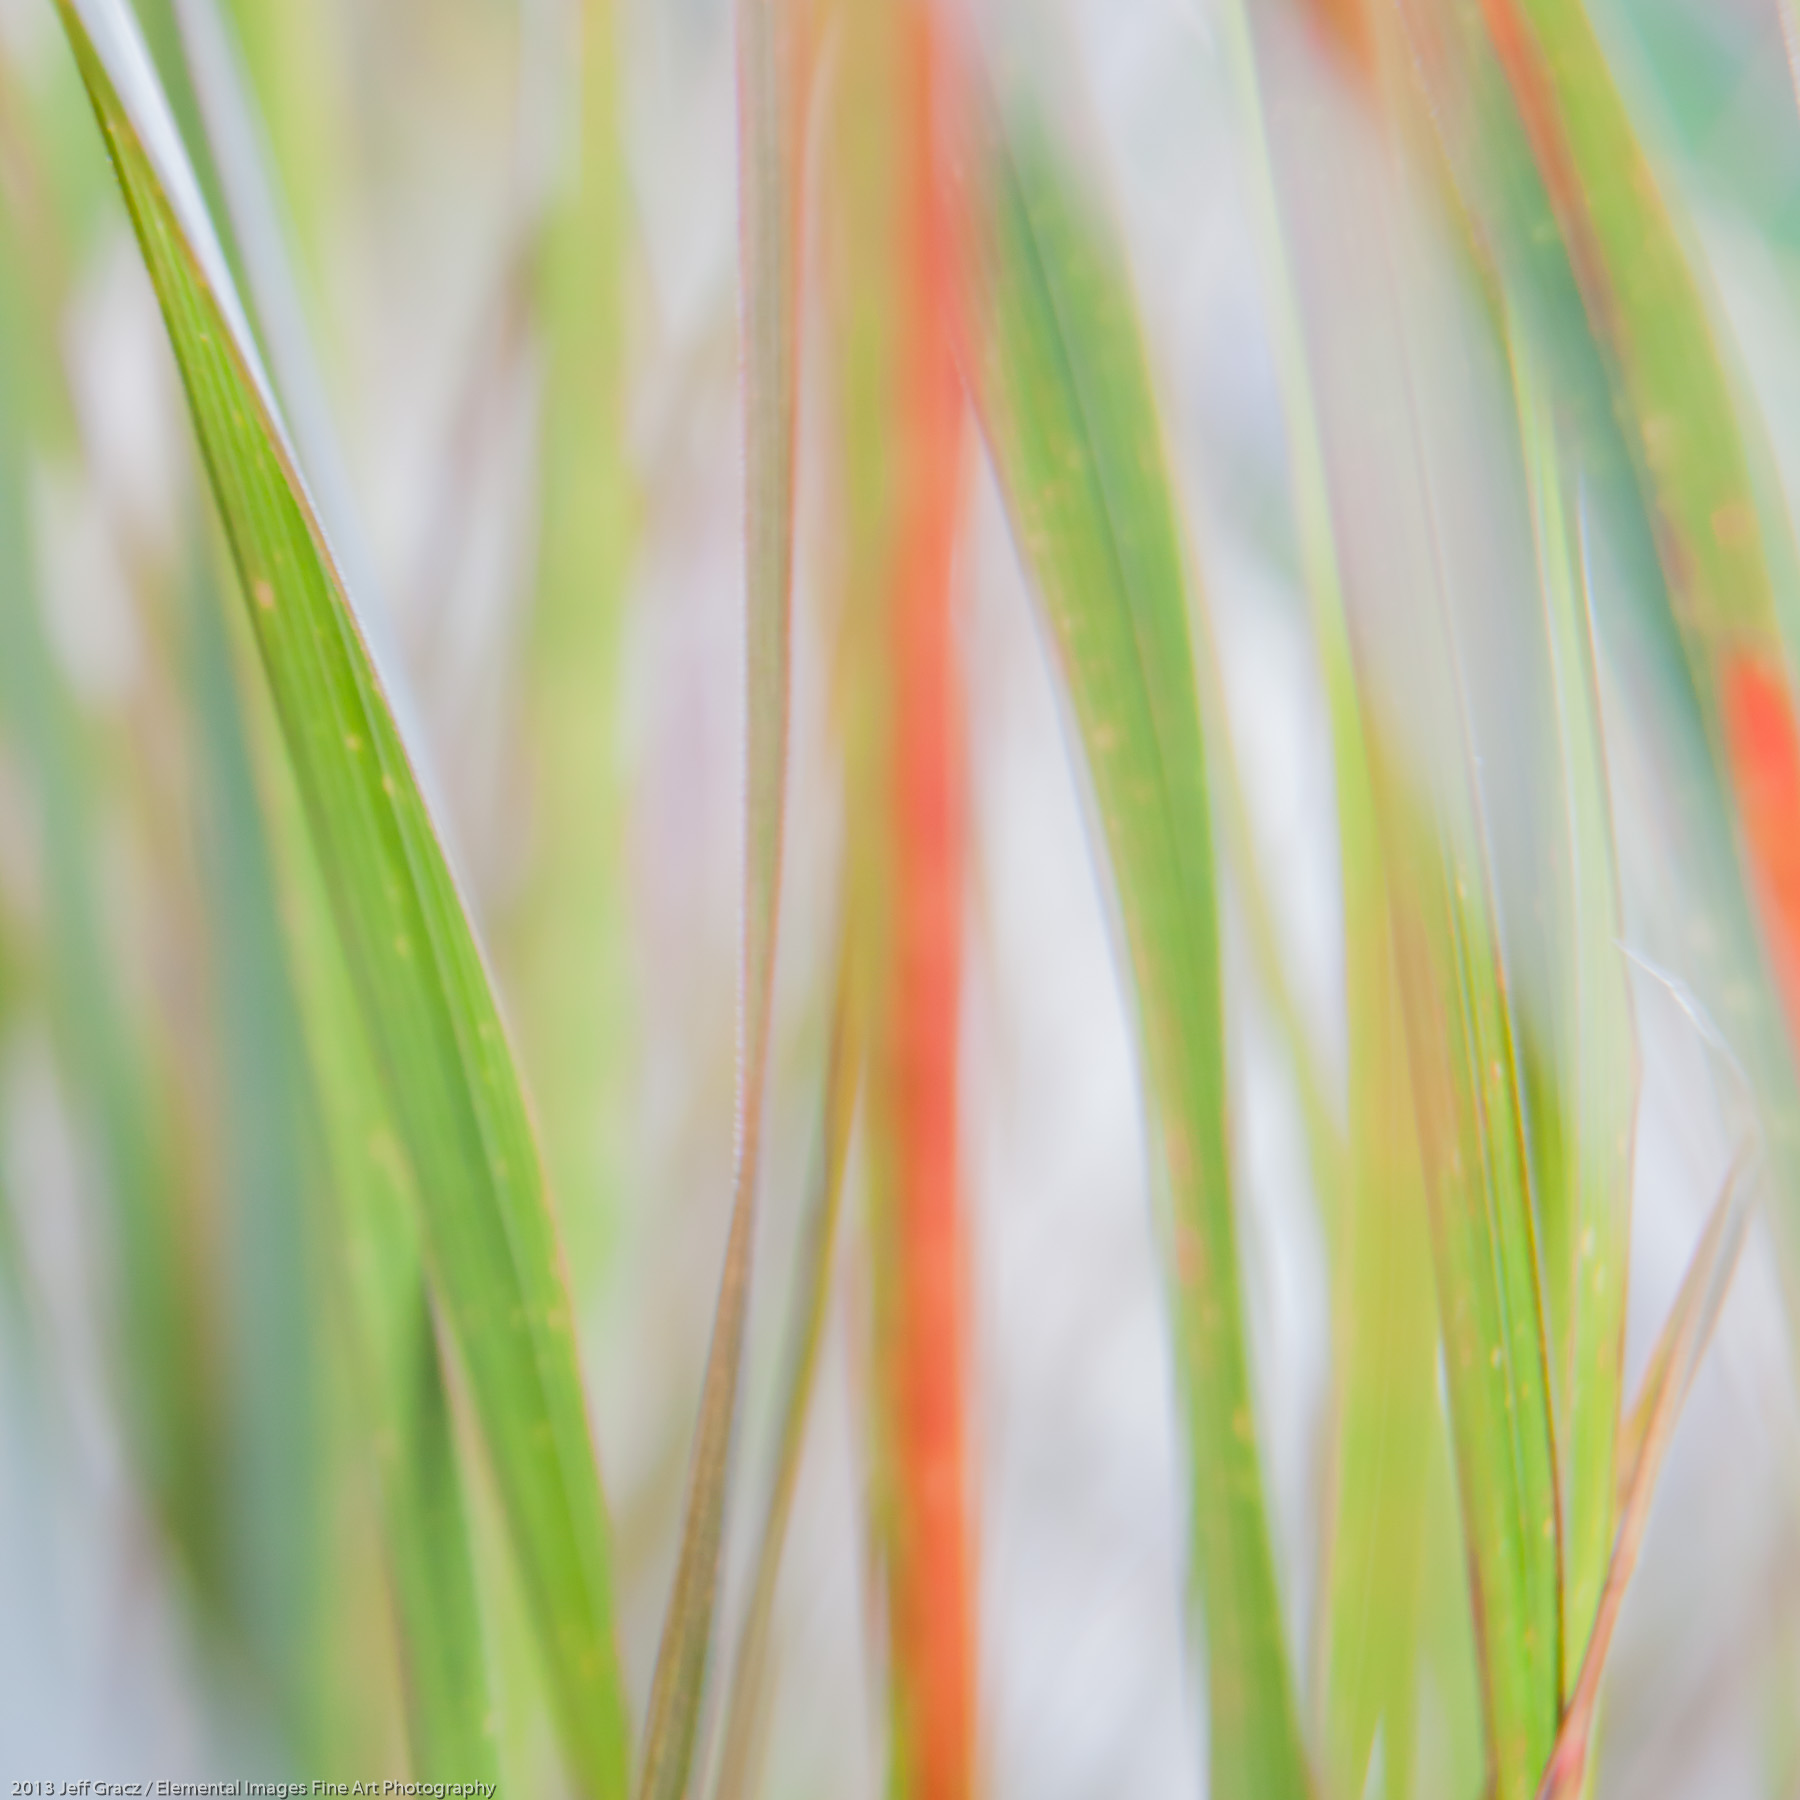 Grasses XLII | Portland | OR | USA - © 2013 Jeff Gracz / Elemental Images Fine Art Photography - All Rights Reserved Worldwide